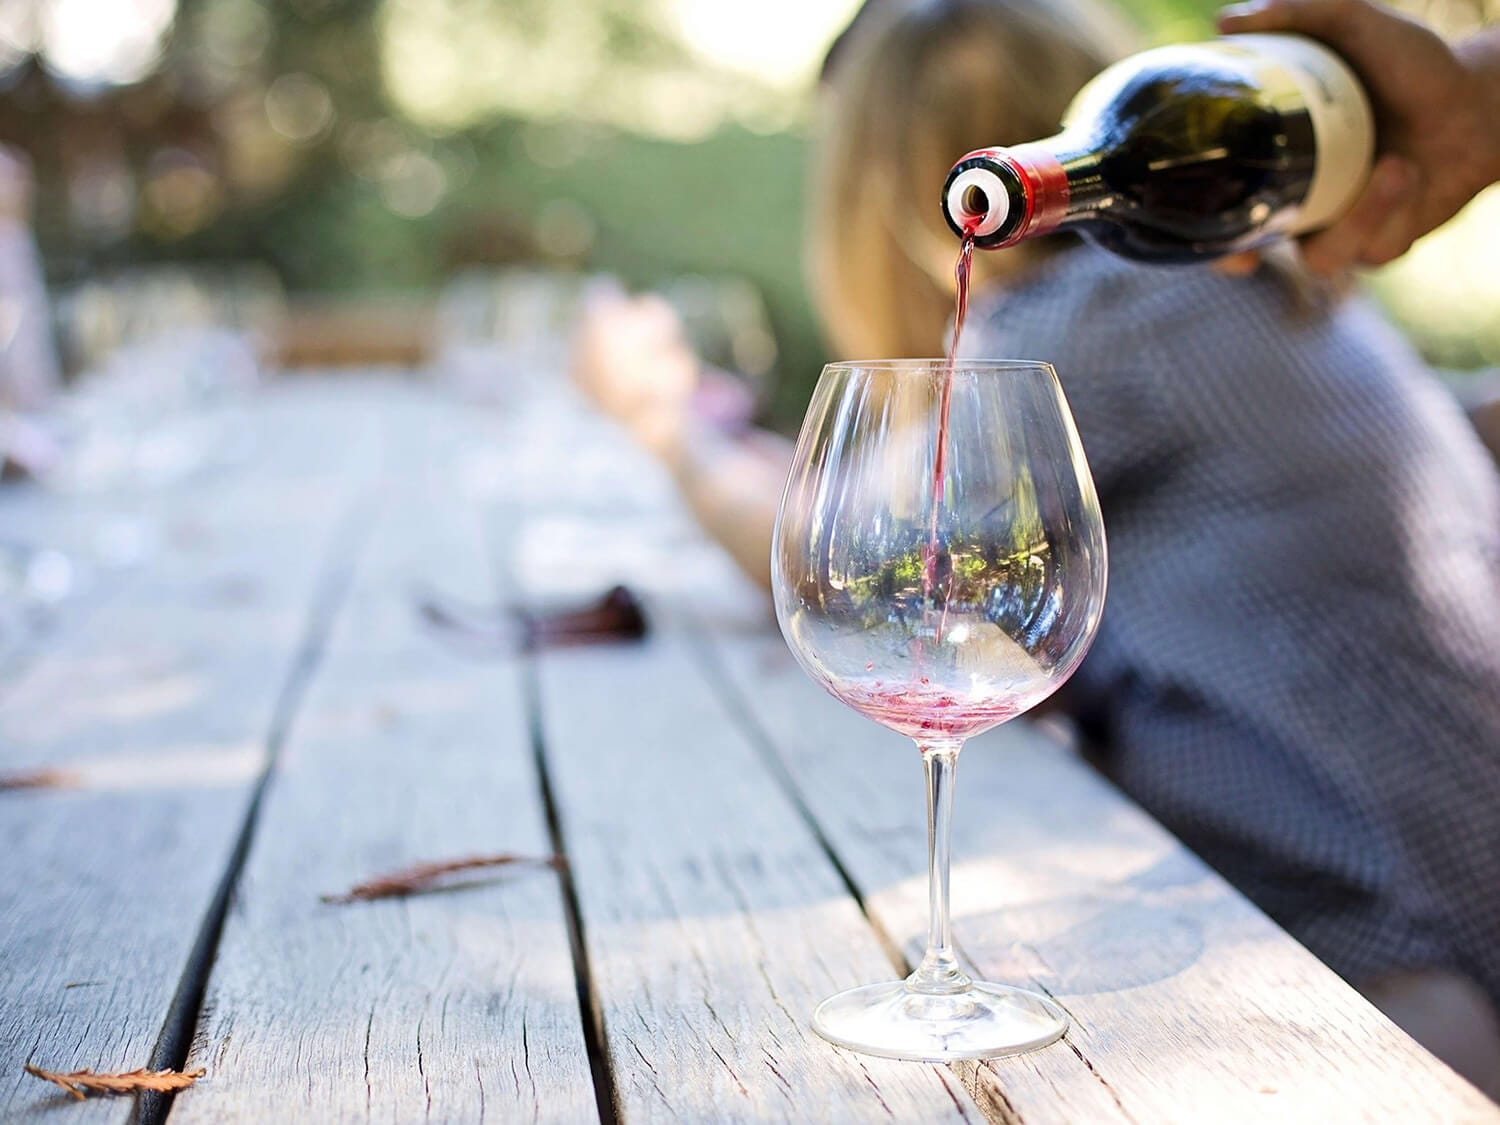 ALCOHOL AND HEALTH – IS A GLASS OF WINE A DAY GOOD FOR YOU?